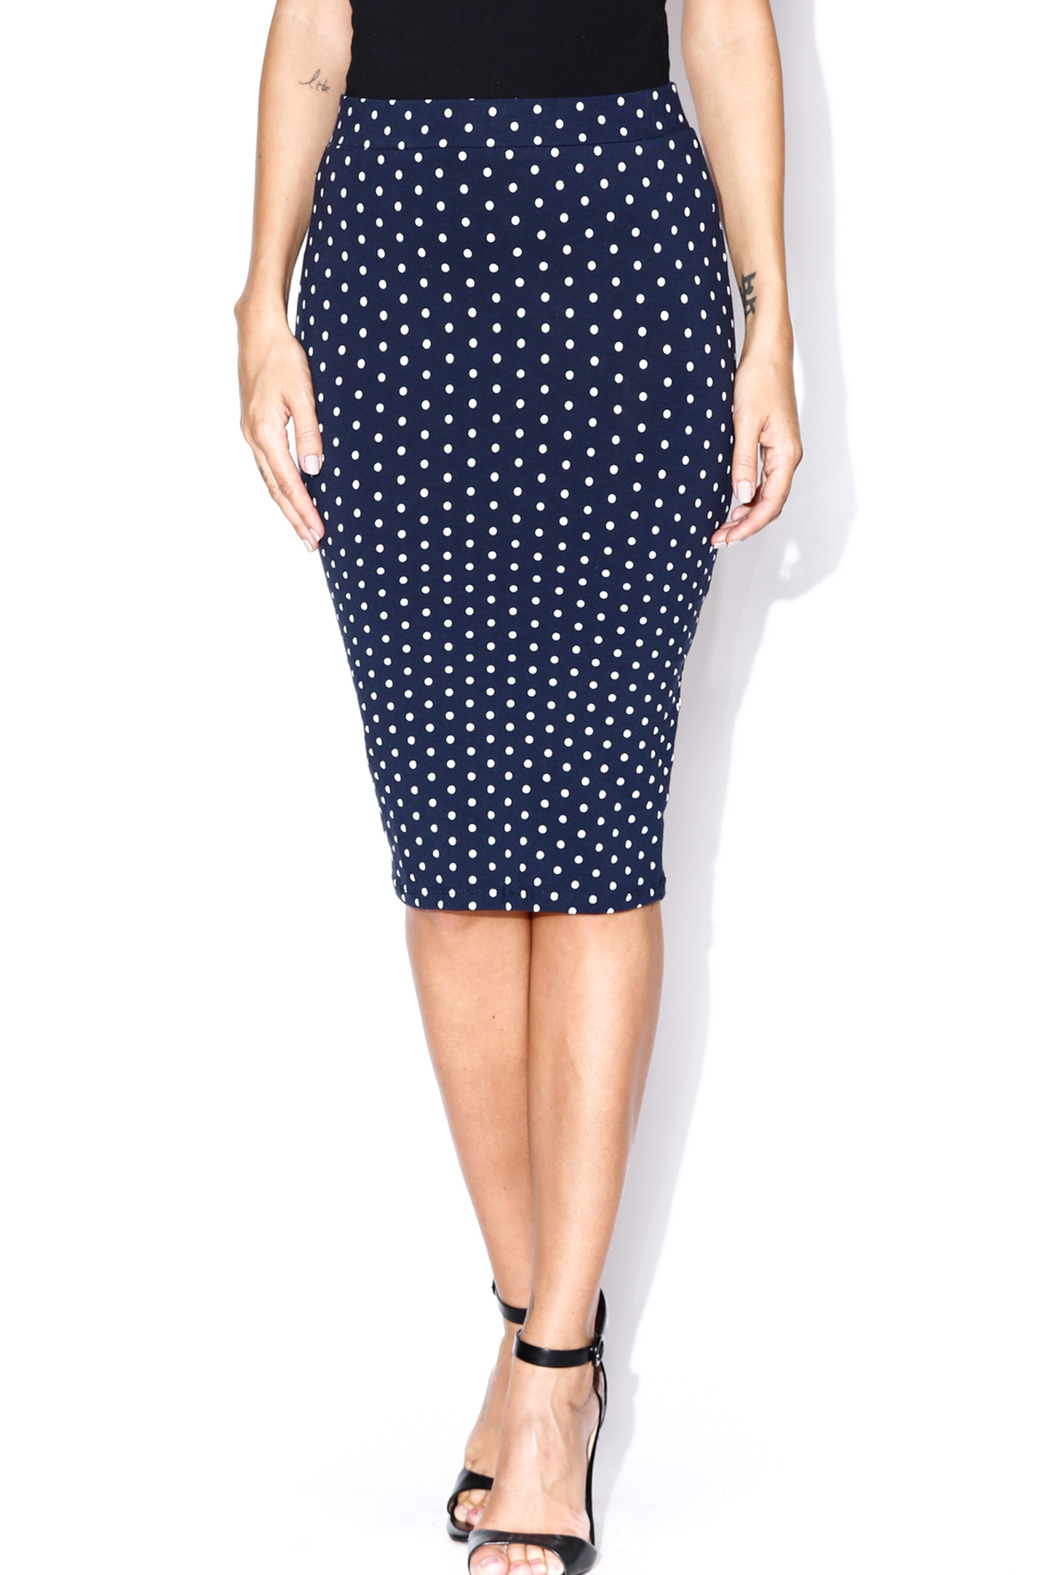 5058b54725 iris Simple Dot Pencil Skirt from Utah by Our Little Store — Shoptiques